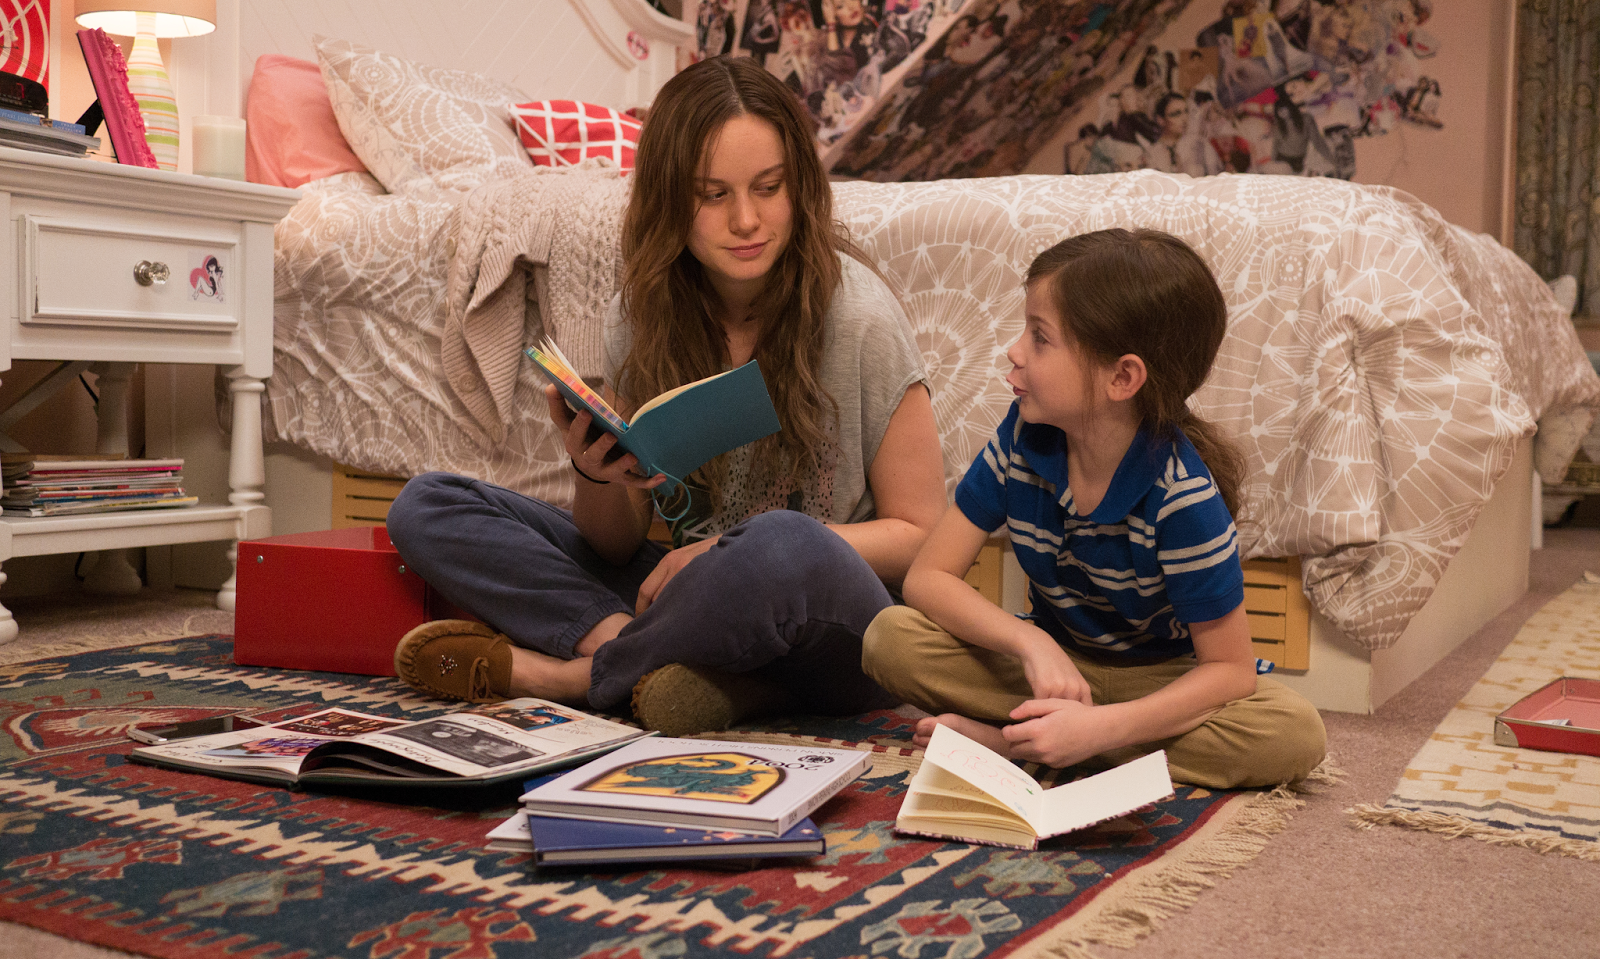 """<p>While certainly not a light or cheerful movie, """"Room"""" will really tear at your heartstrings as it follows one brave woman's courageous story, who will do anything for the sake of her child and his safety. Our reviewers, Ann and Les, did not have enough good things to say about this movie.</p>"""